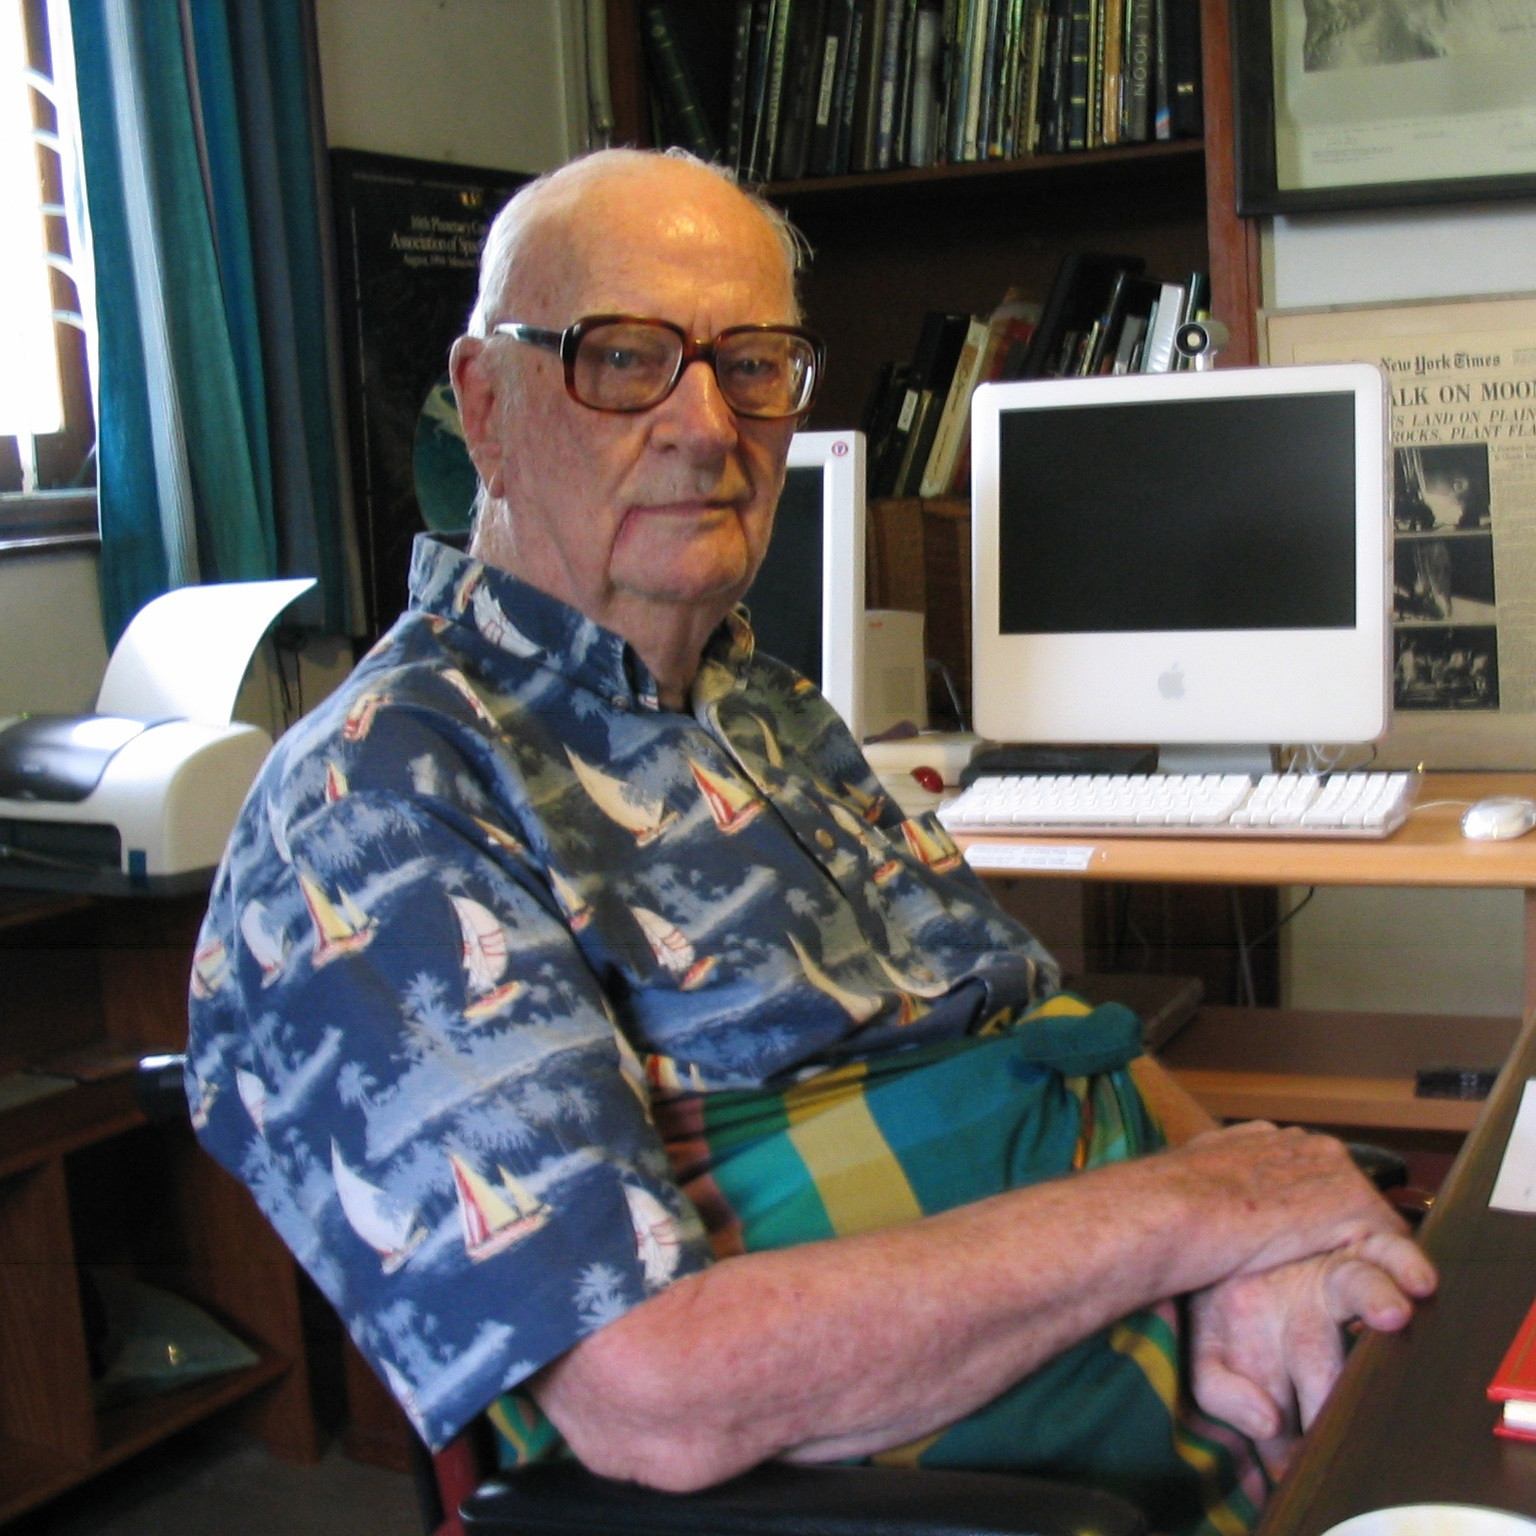 a biography of arthur clarke an english novelist Arthur c clarke, a science fiction author, has had a very interesting life arthur was born on december 16, 1917, in minehead, england he was the oldest of four children.